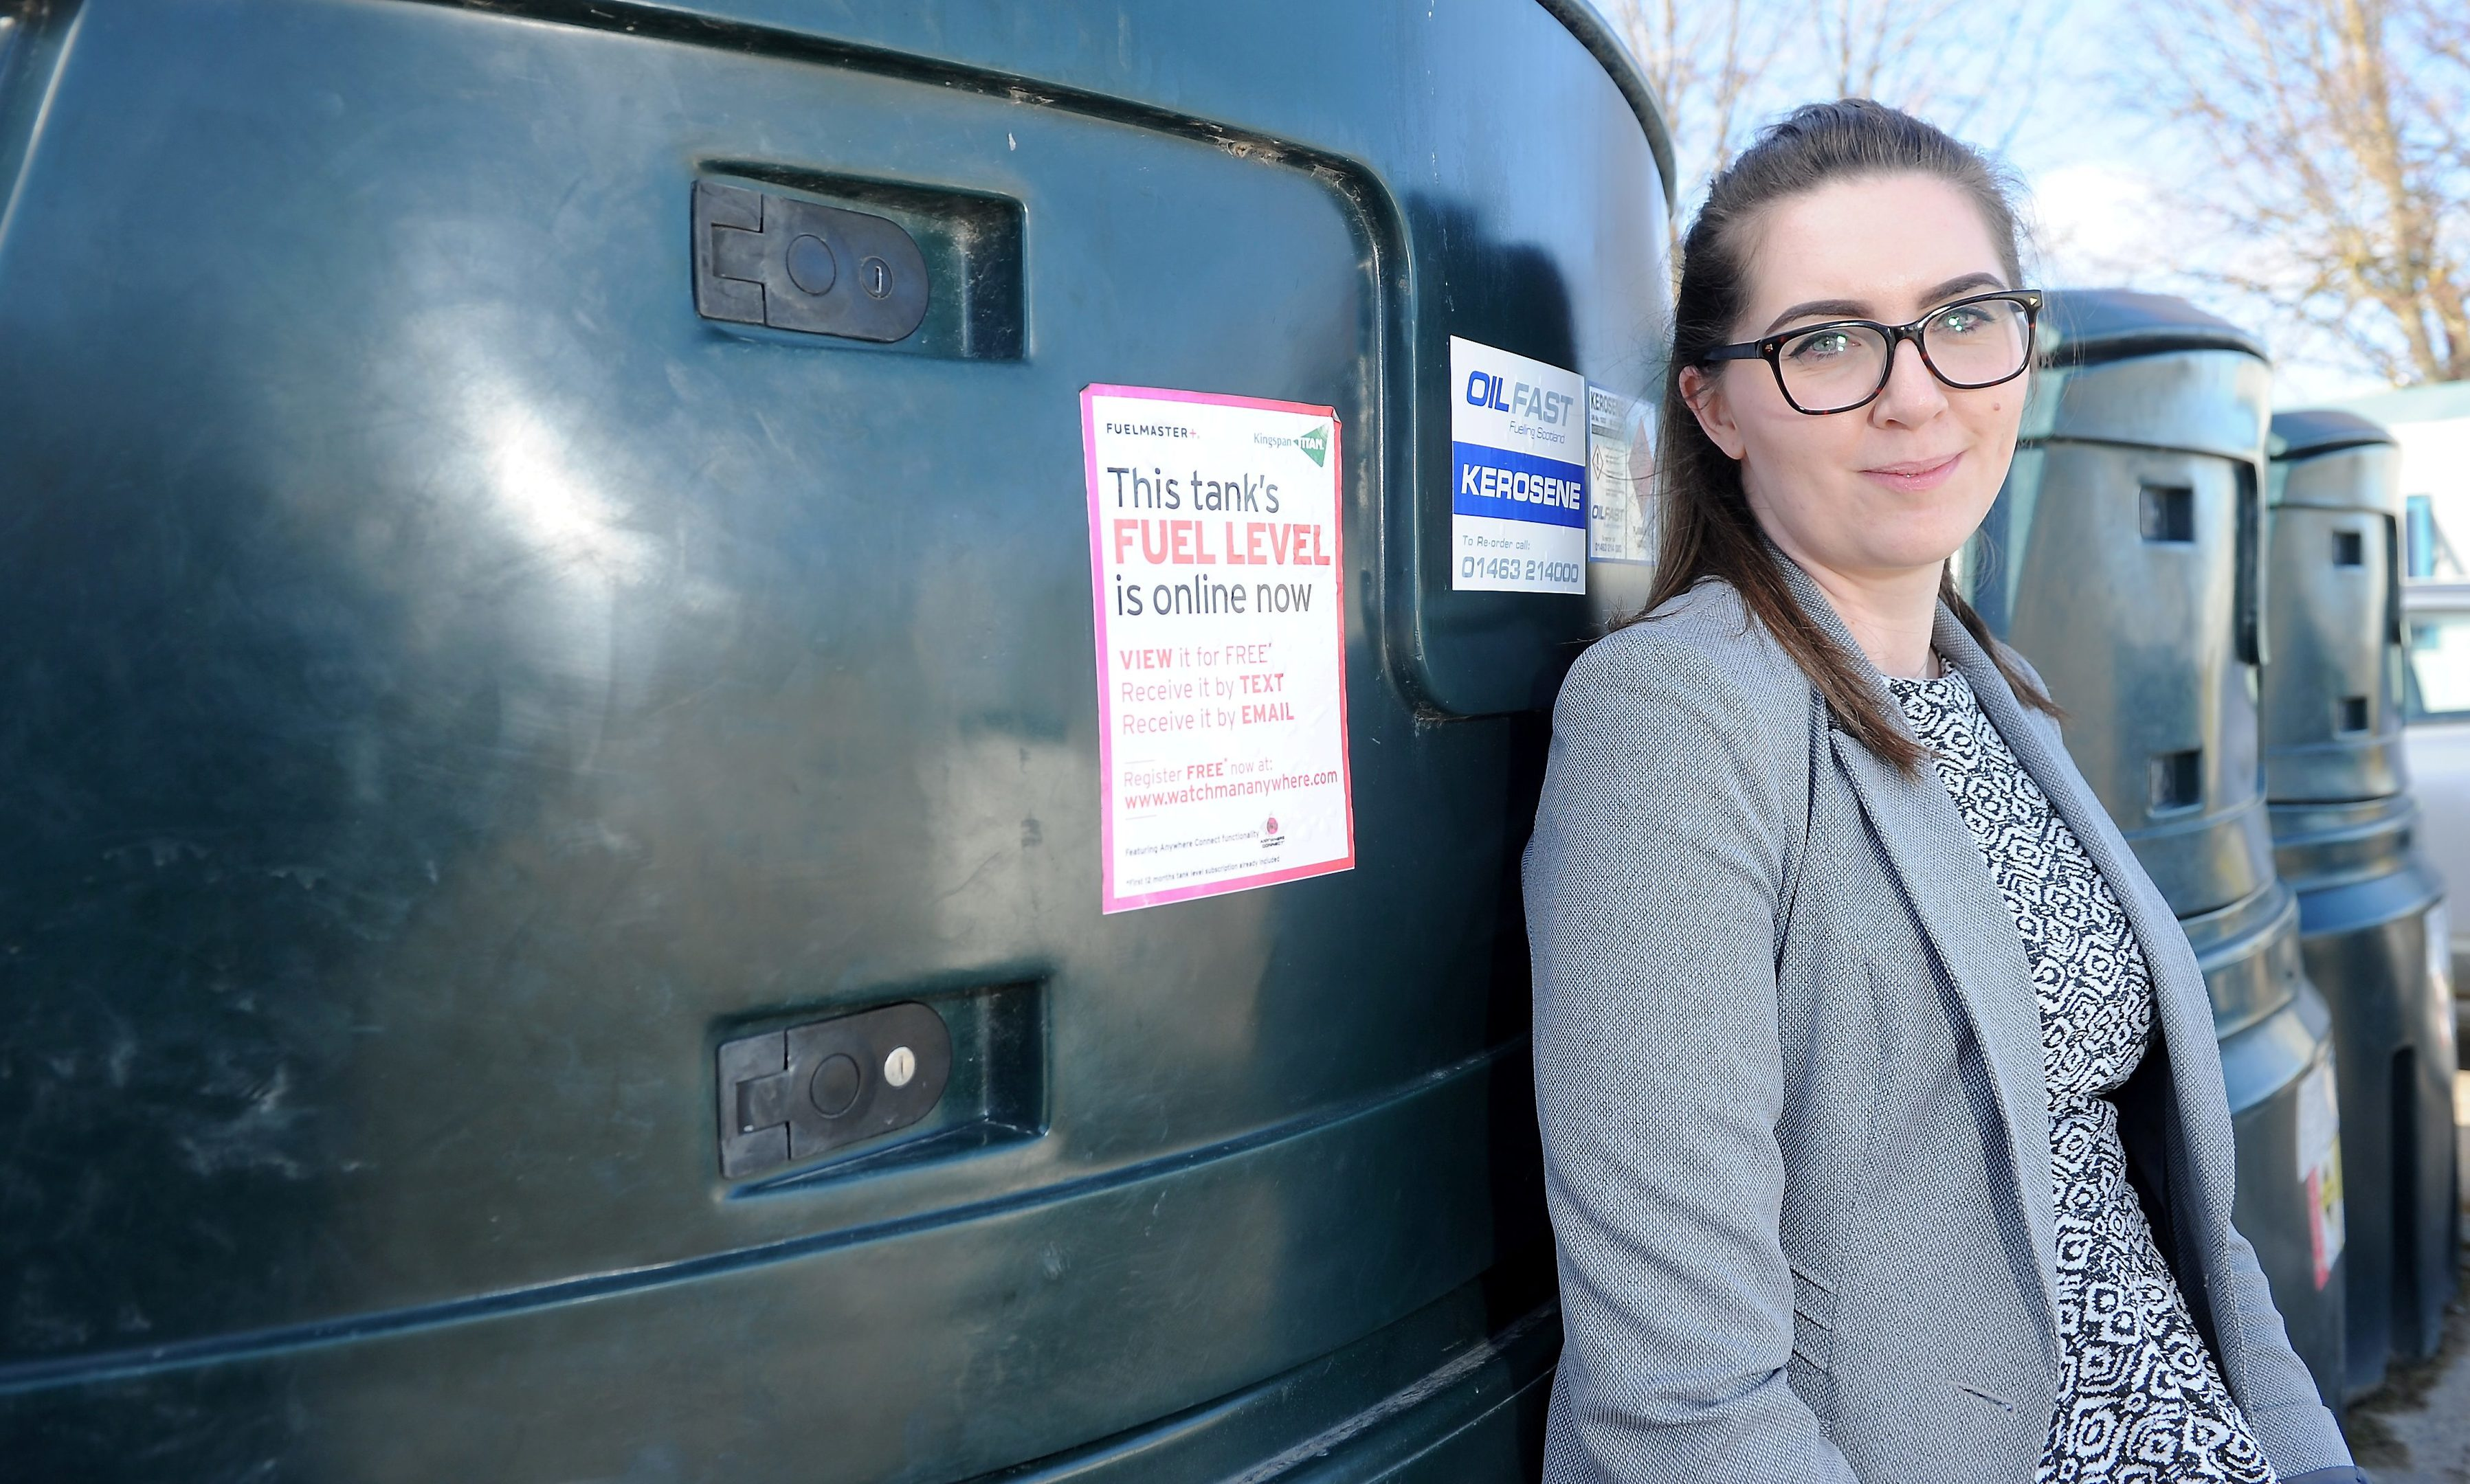 Oilfast depot supervisor Katie Macleod has warned rural residents to protect their homes.